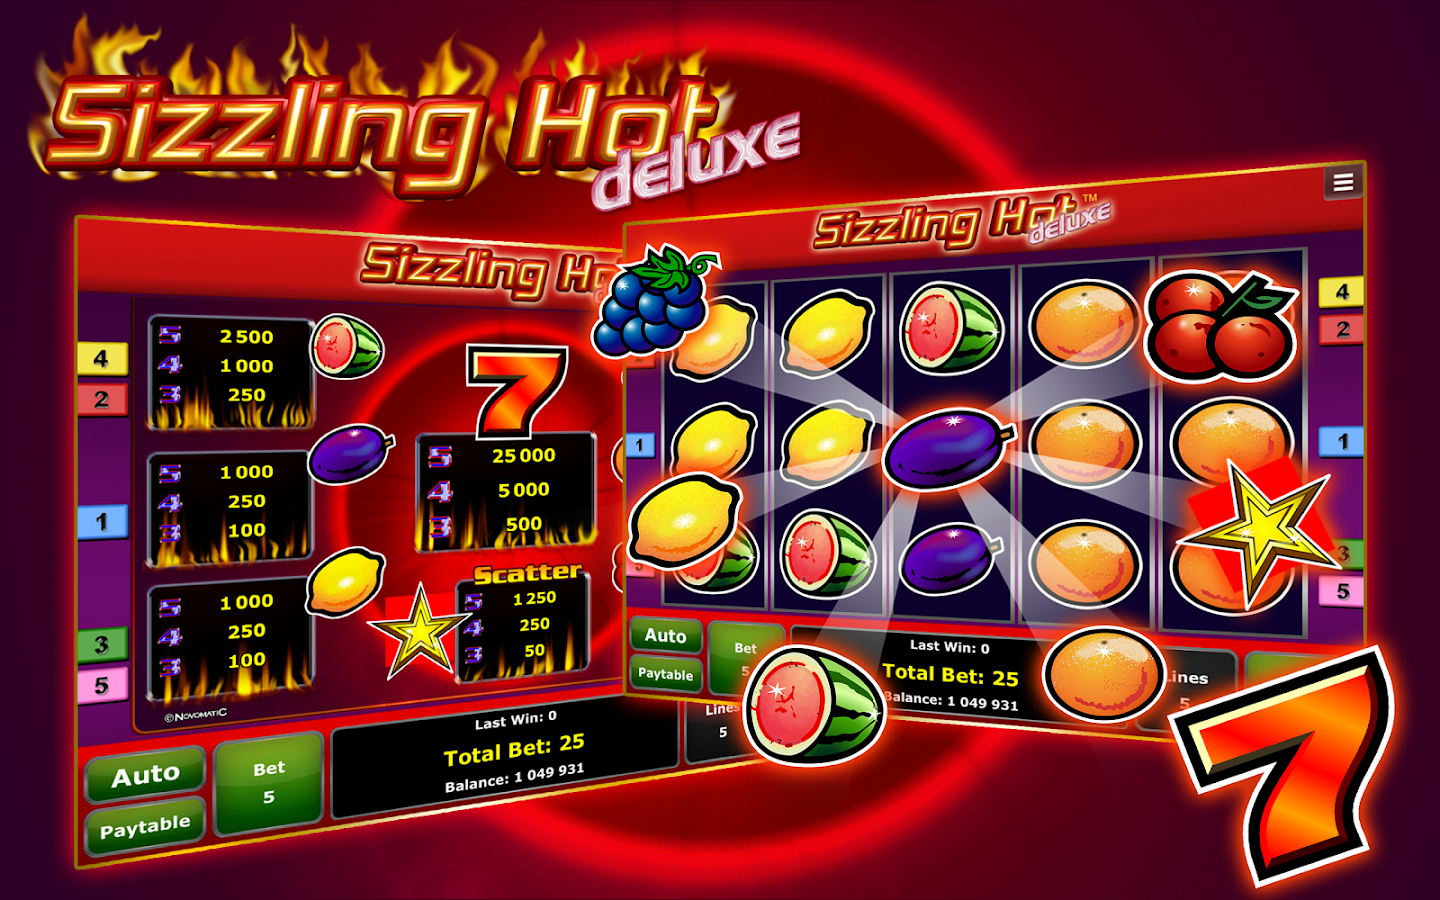 gametwist casino online sizzling hot deluxe free play